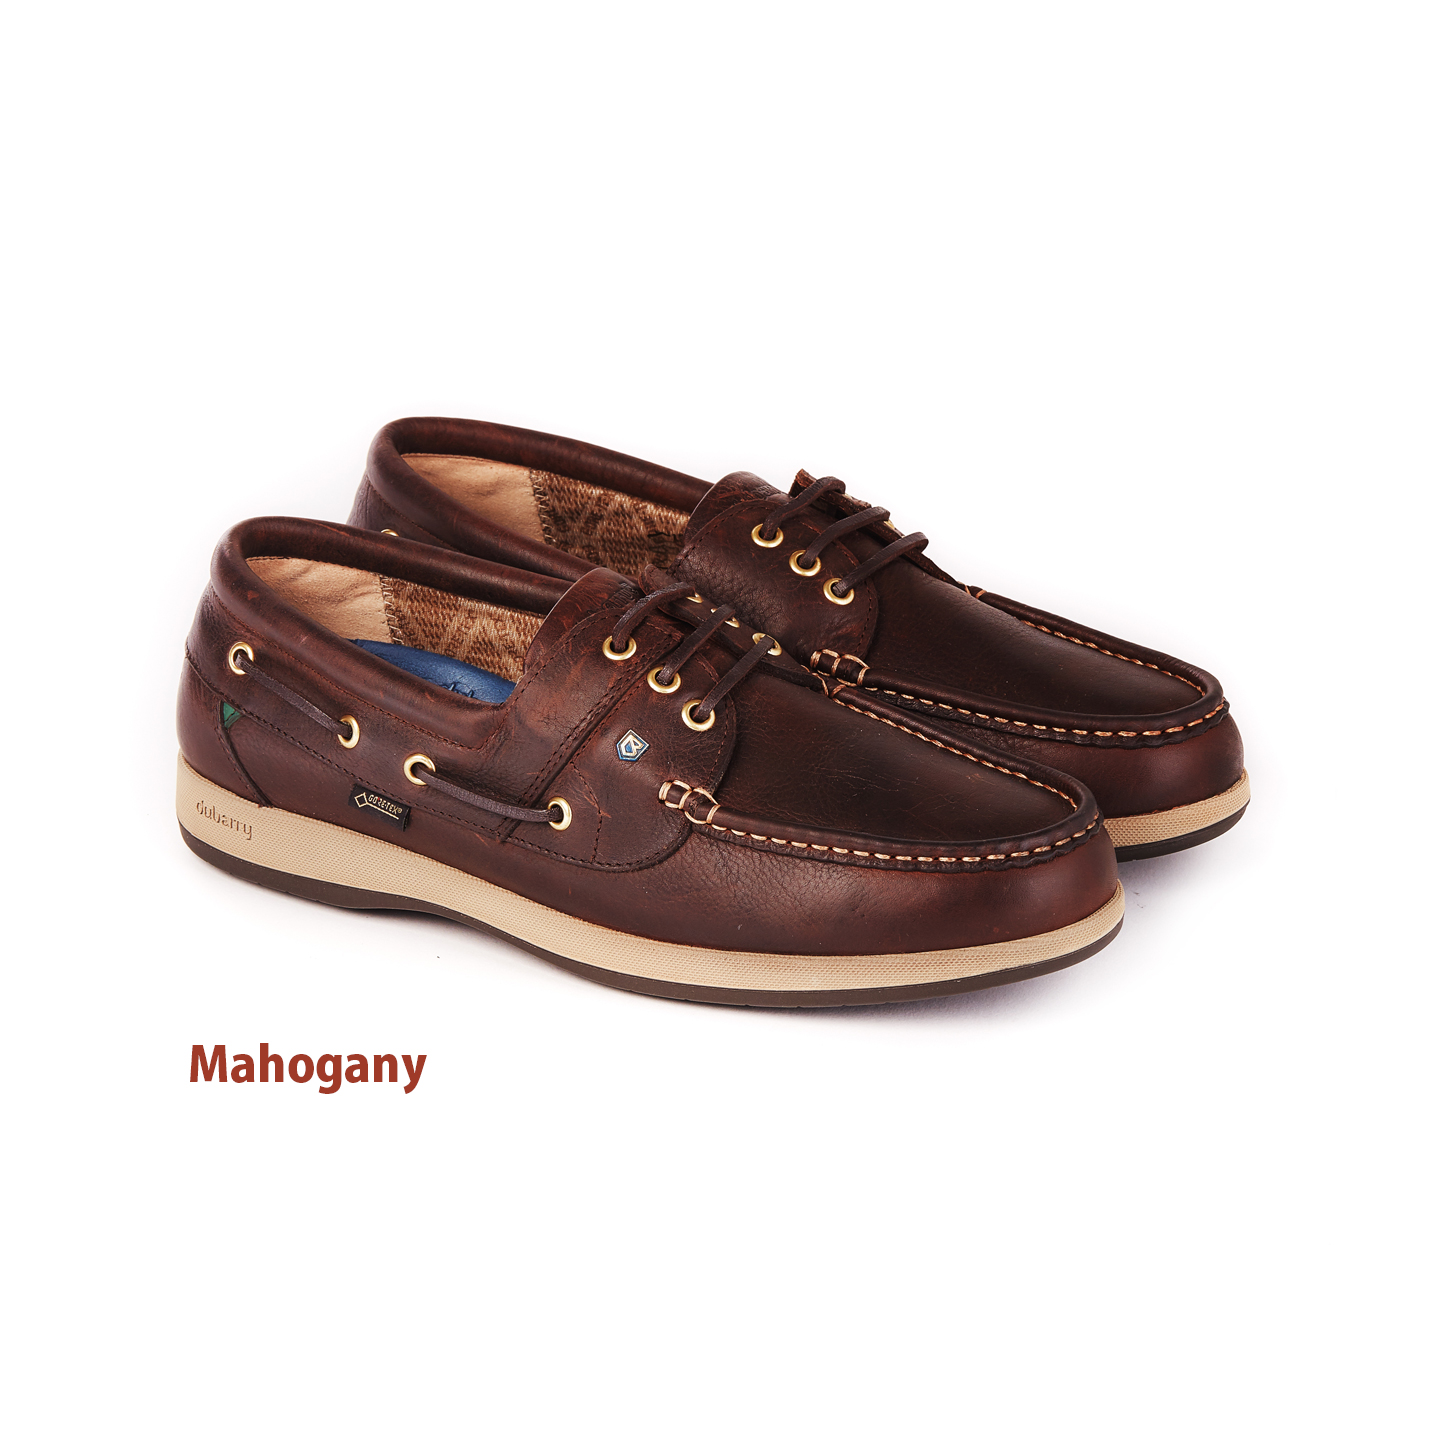 Deckshoes mariner